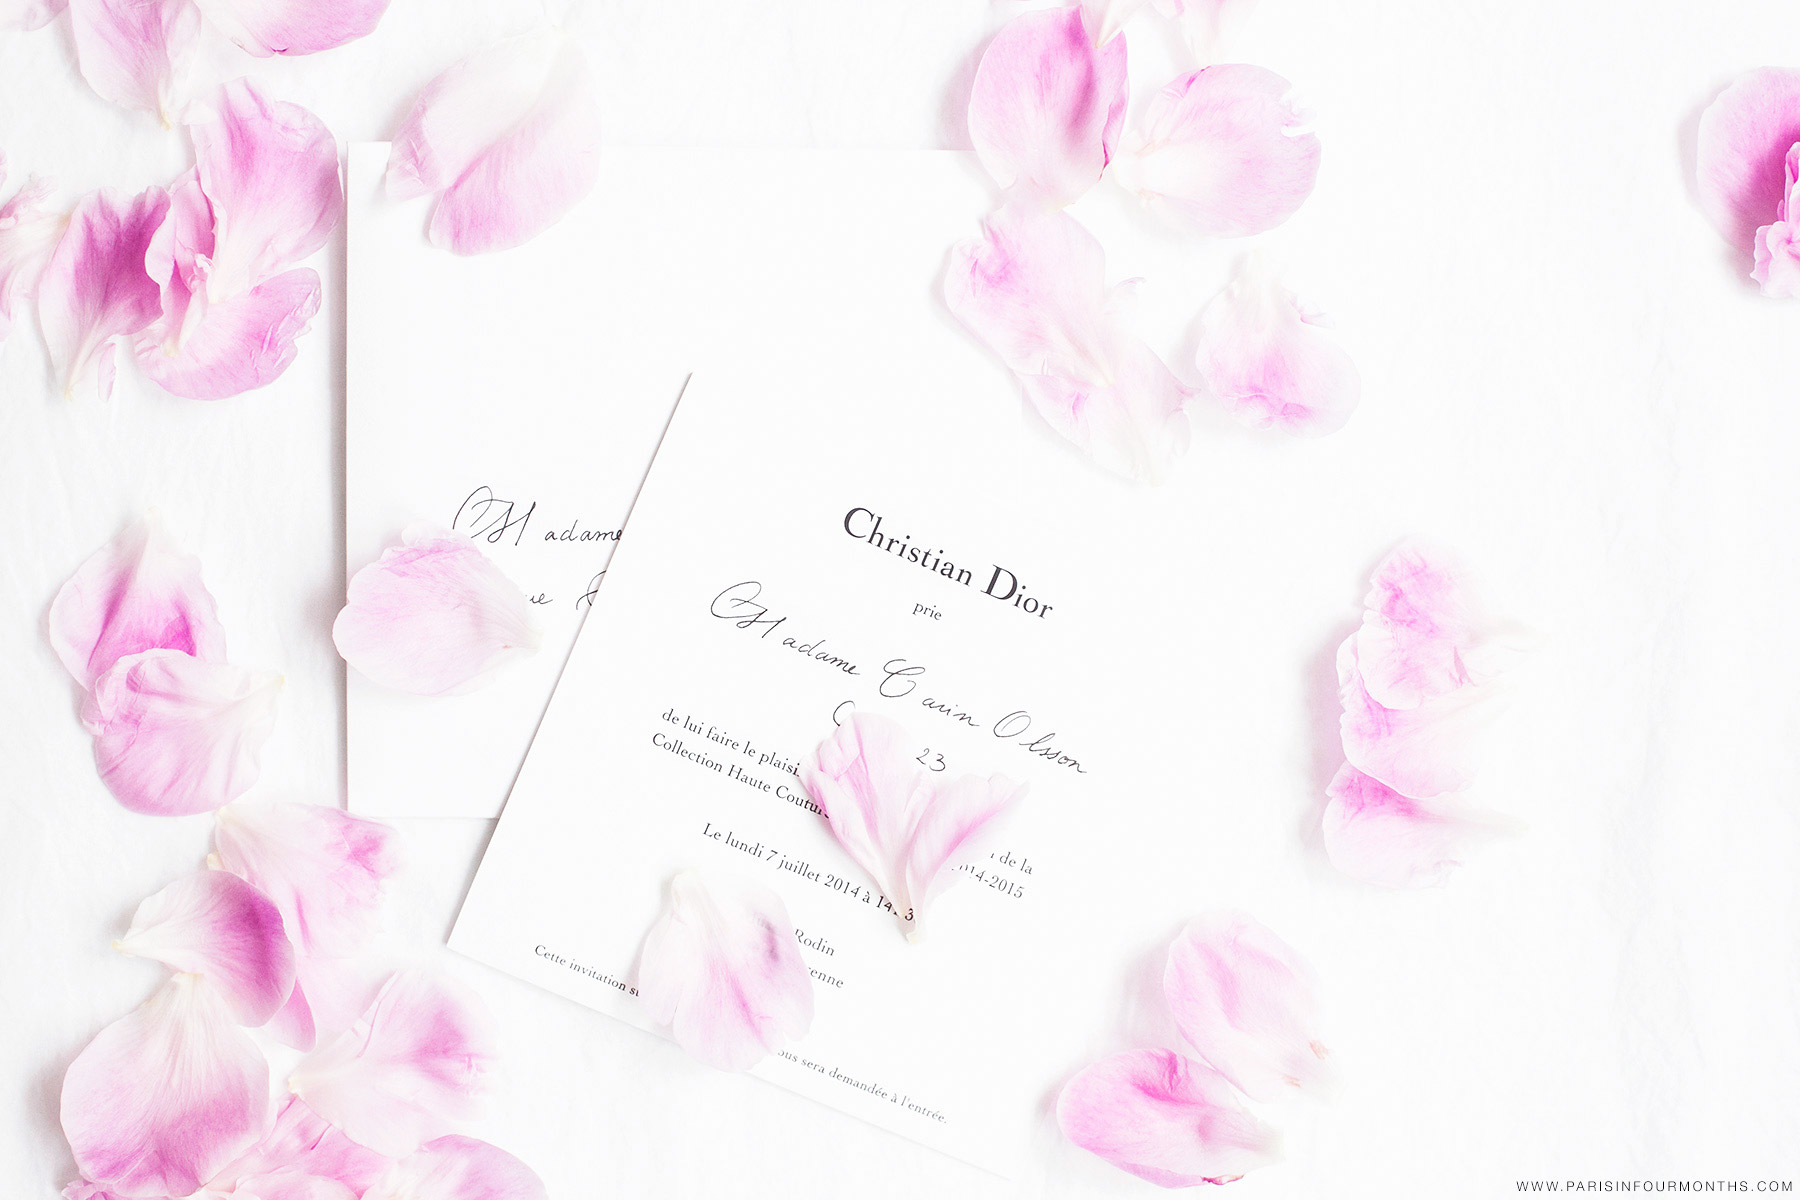 Christian Dior invitation by Carin Olsson (Paris in Four Months)